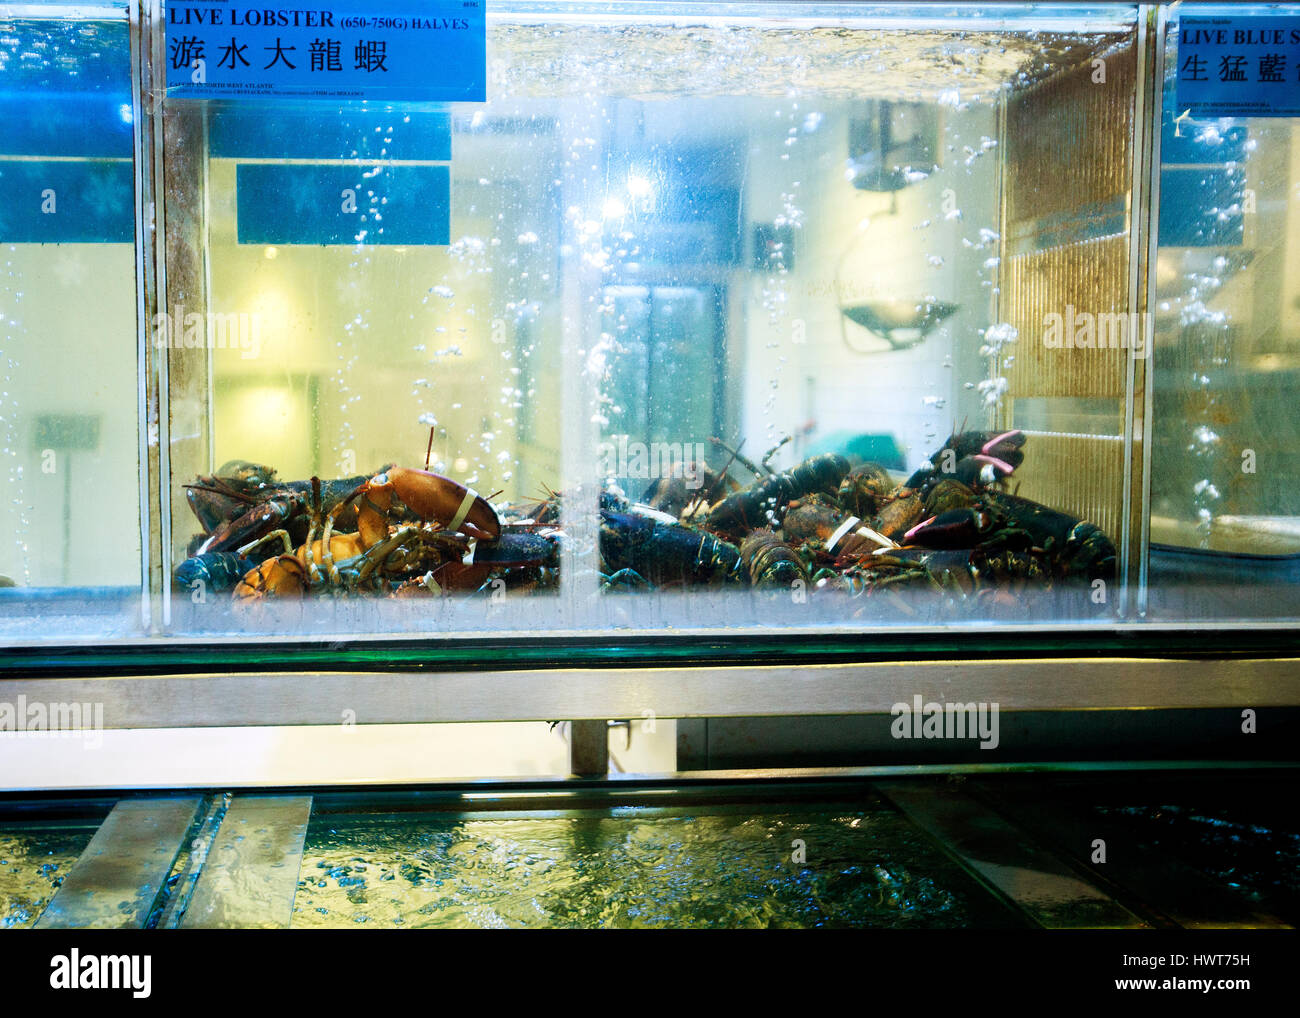 lobsters alive in restaurant fish tank china town London - Stock Image